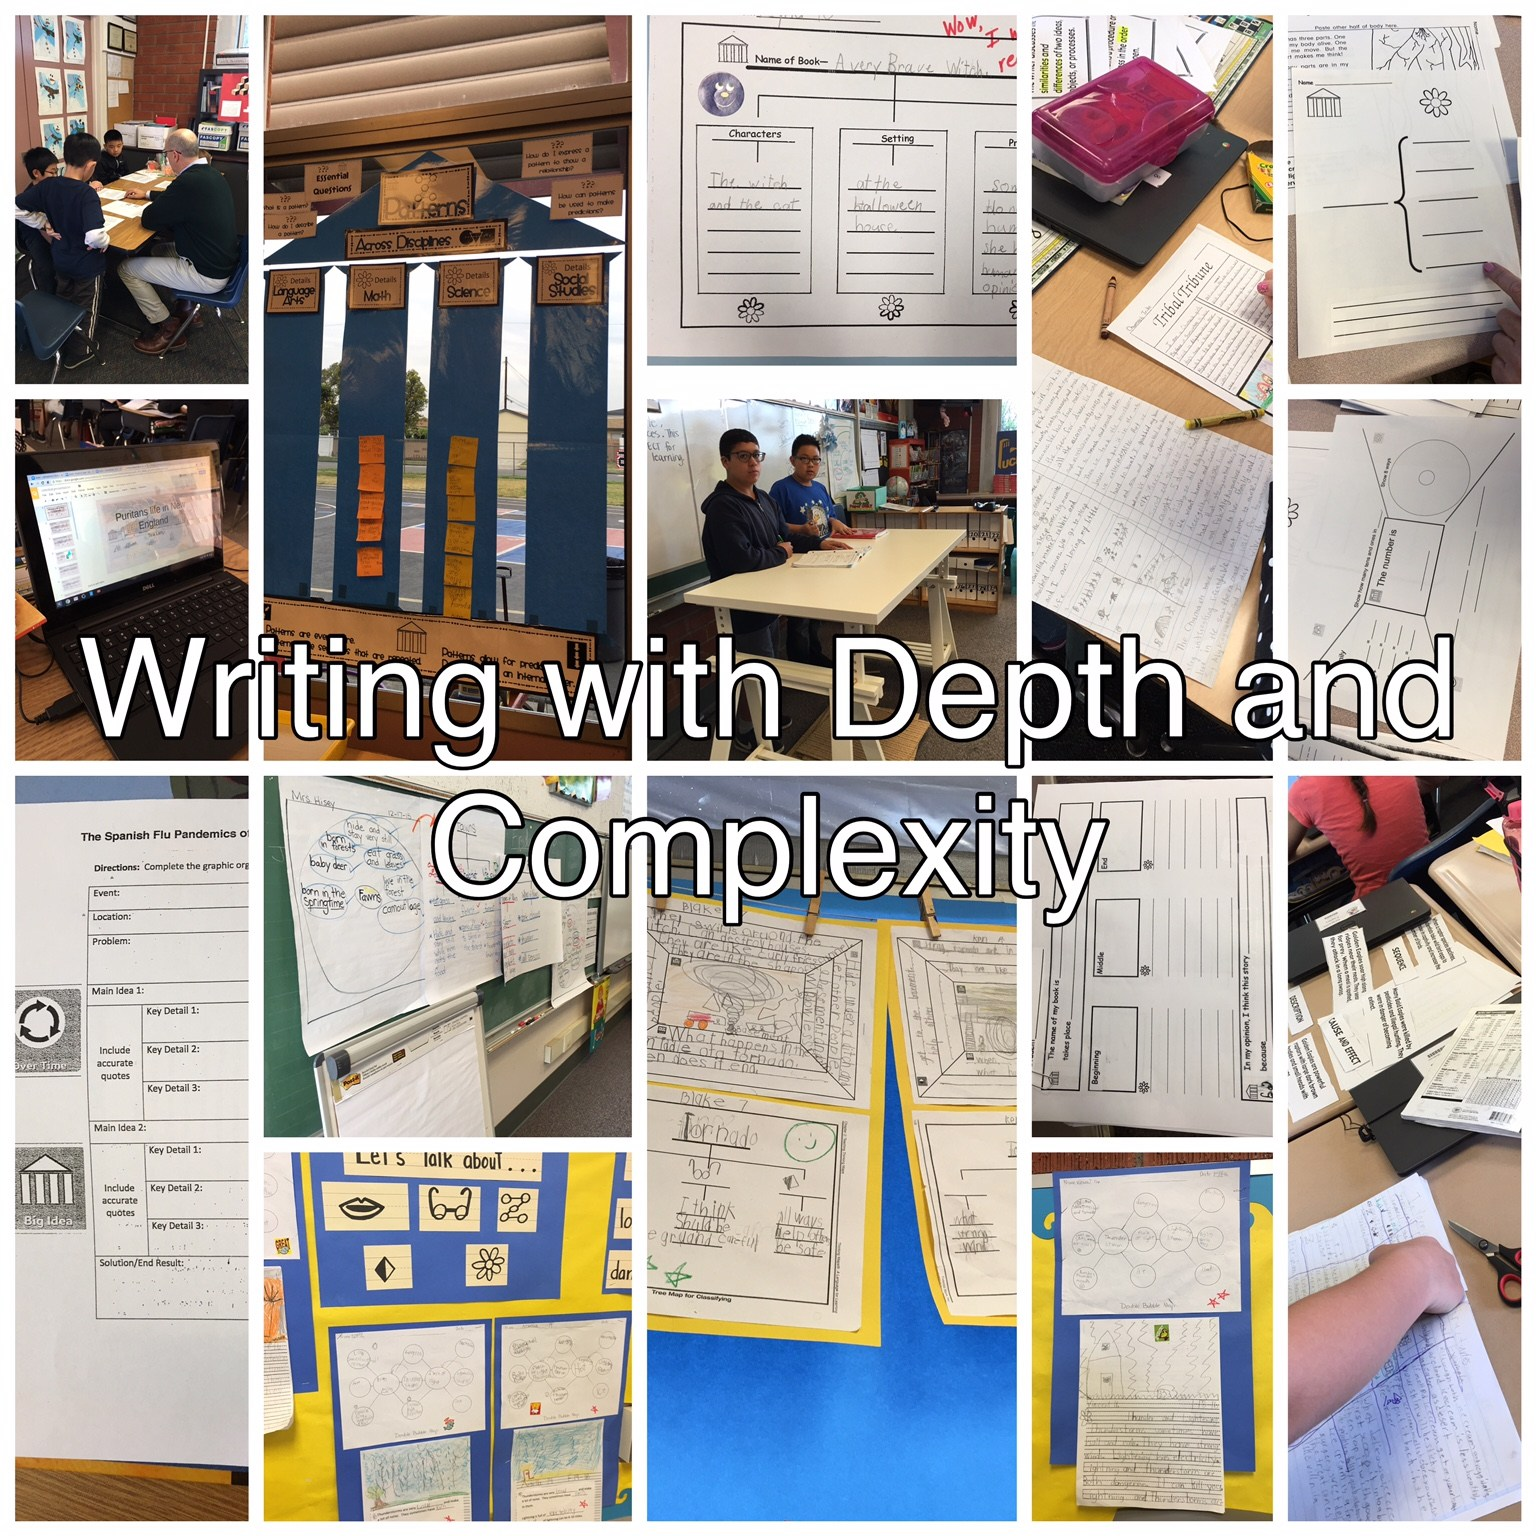 Writing with Depth and Complexity